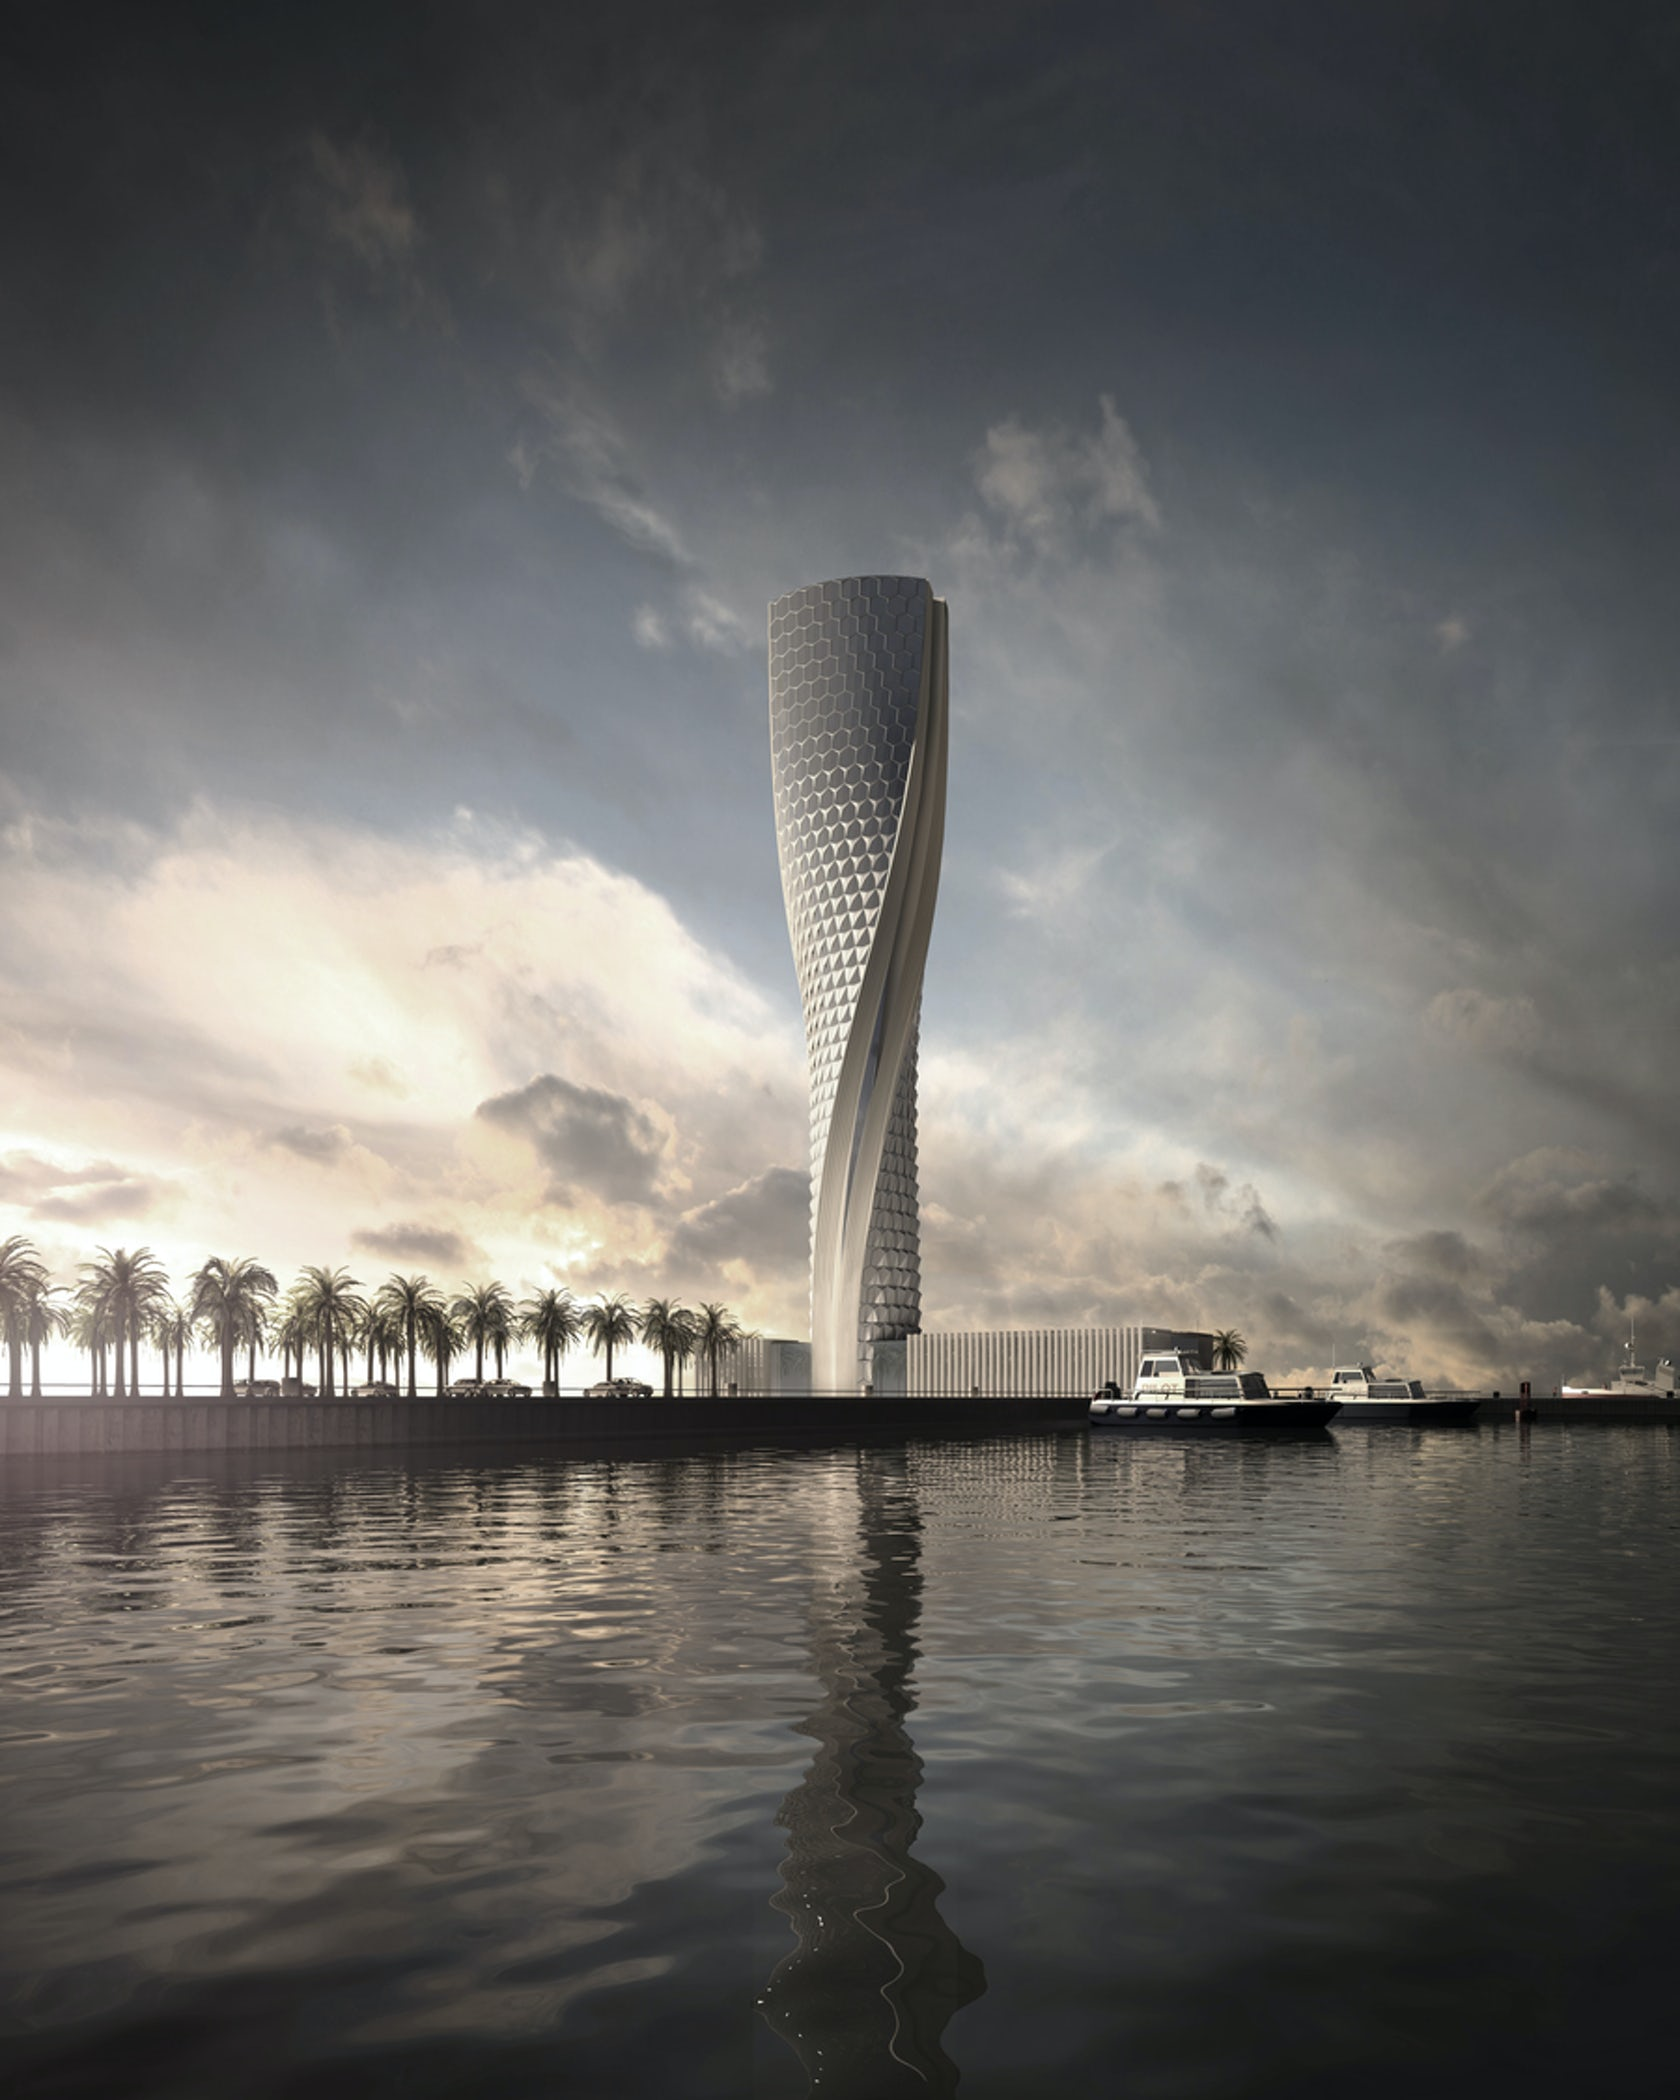 Control tower at Hamad Port, one of the highest in the world